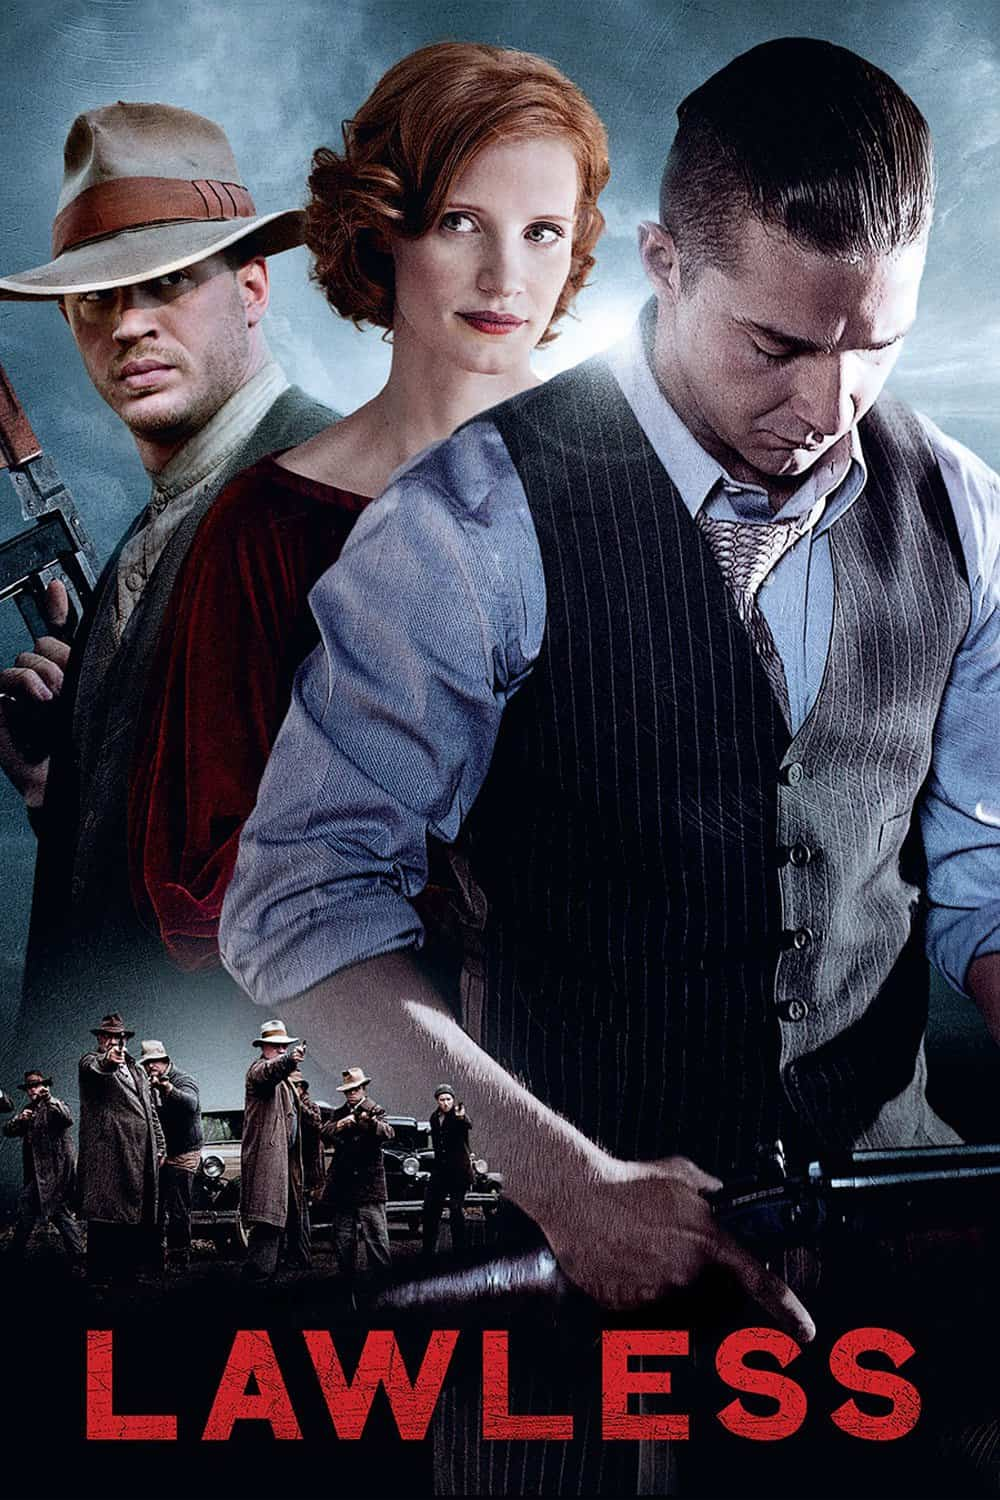 Lawless, 2012